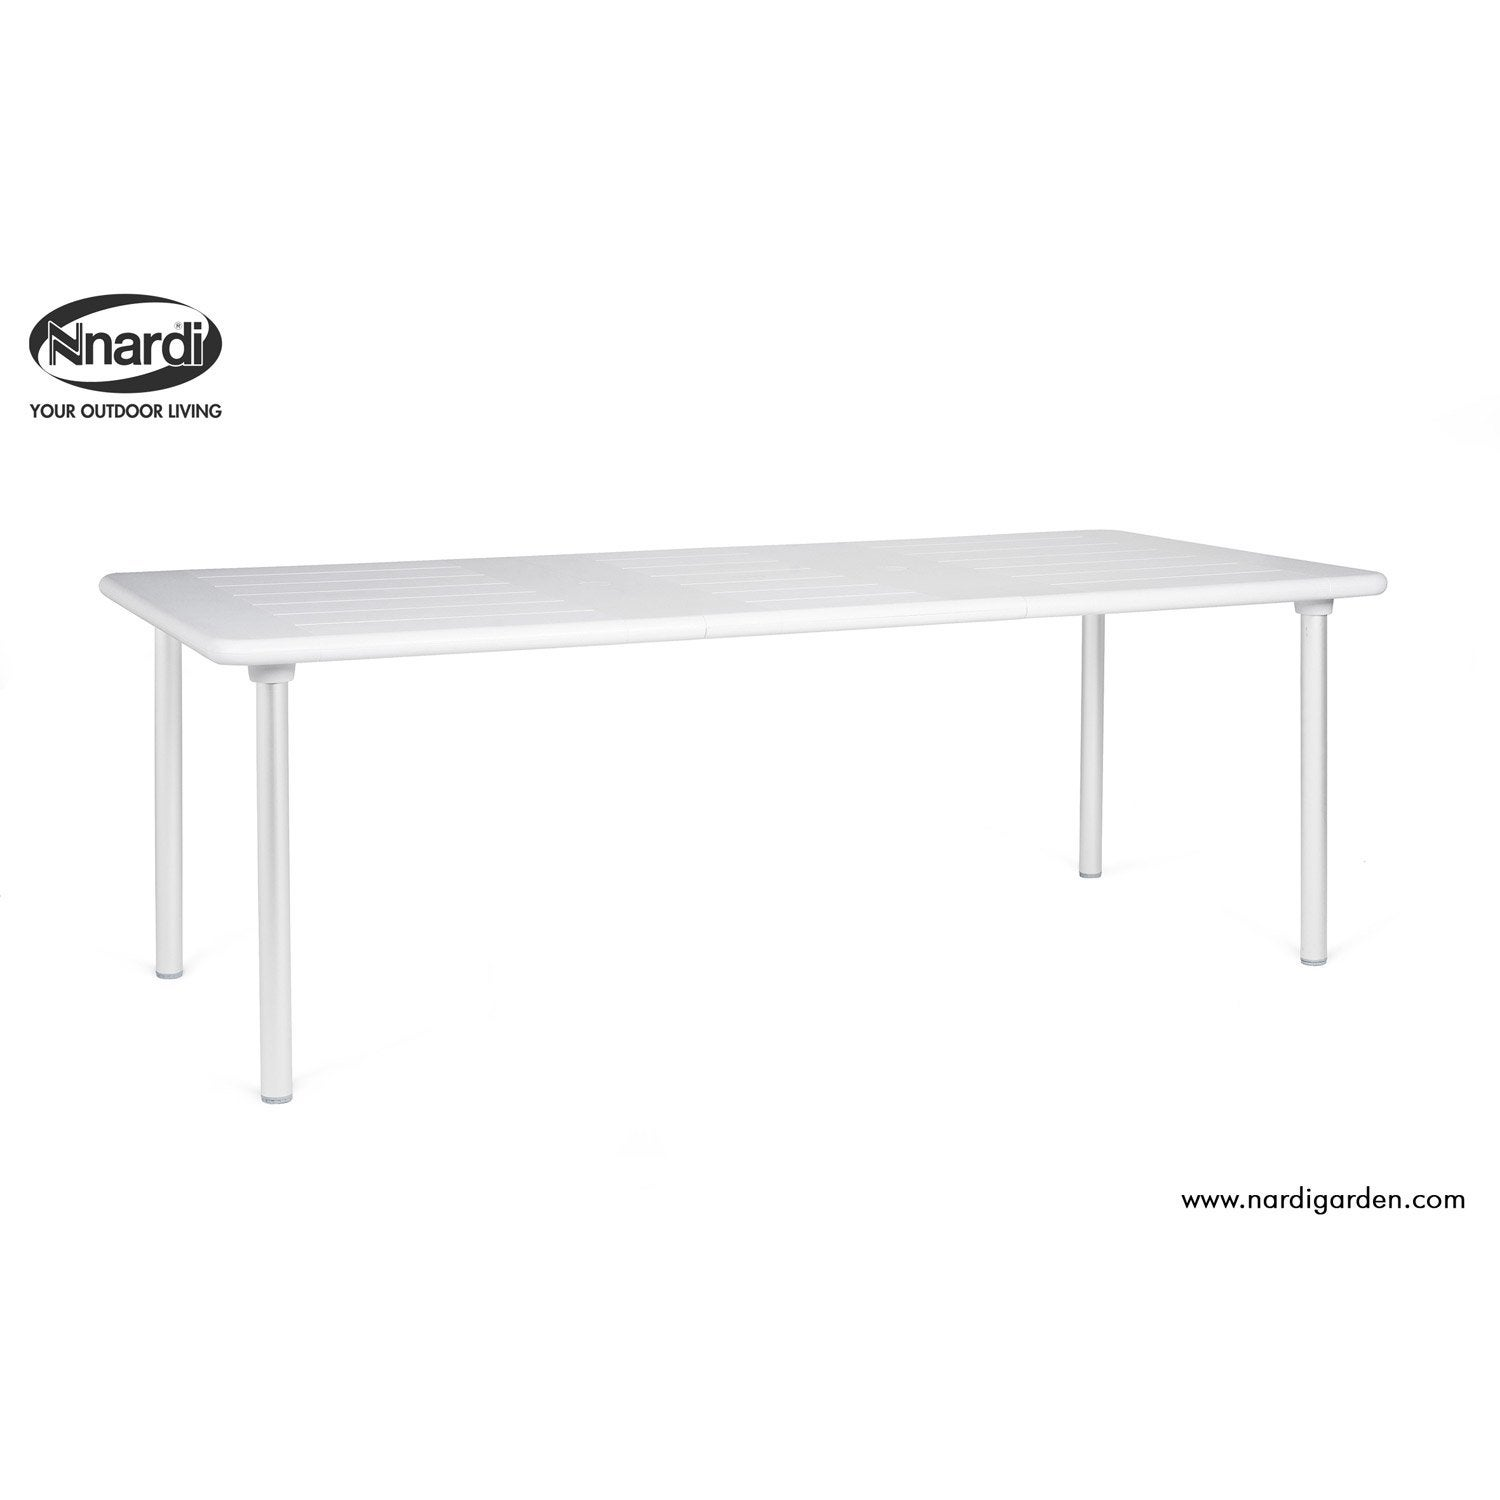 table de jardin nardi maestrale rectangulaire blanc et aluminium 8 personnes leroy merlin. Black Bedroom Furniture Sets. Home Design Ideas